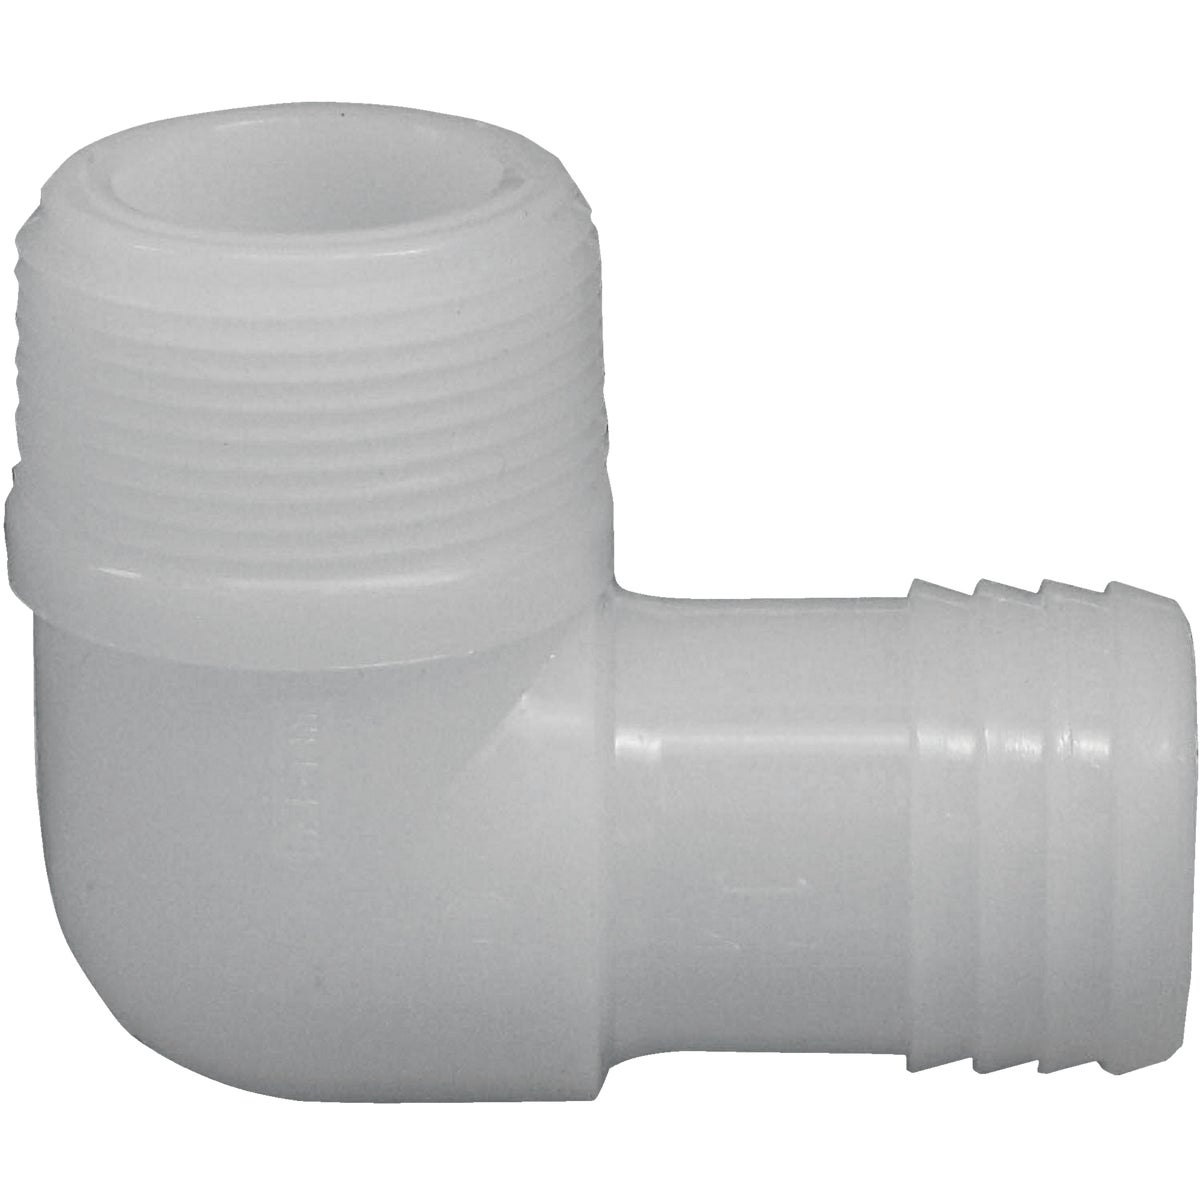 "3/4"" NYLON INSXM ELBOW - 362807 by Genova Inc"